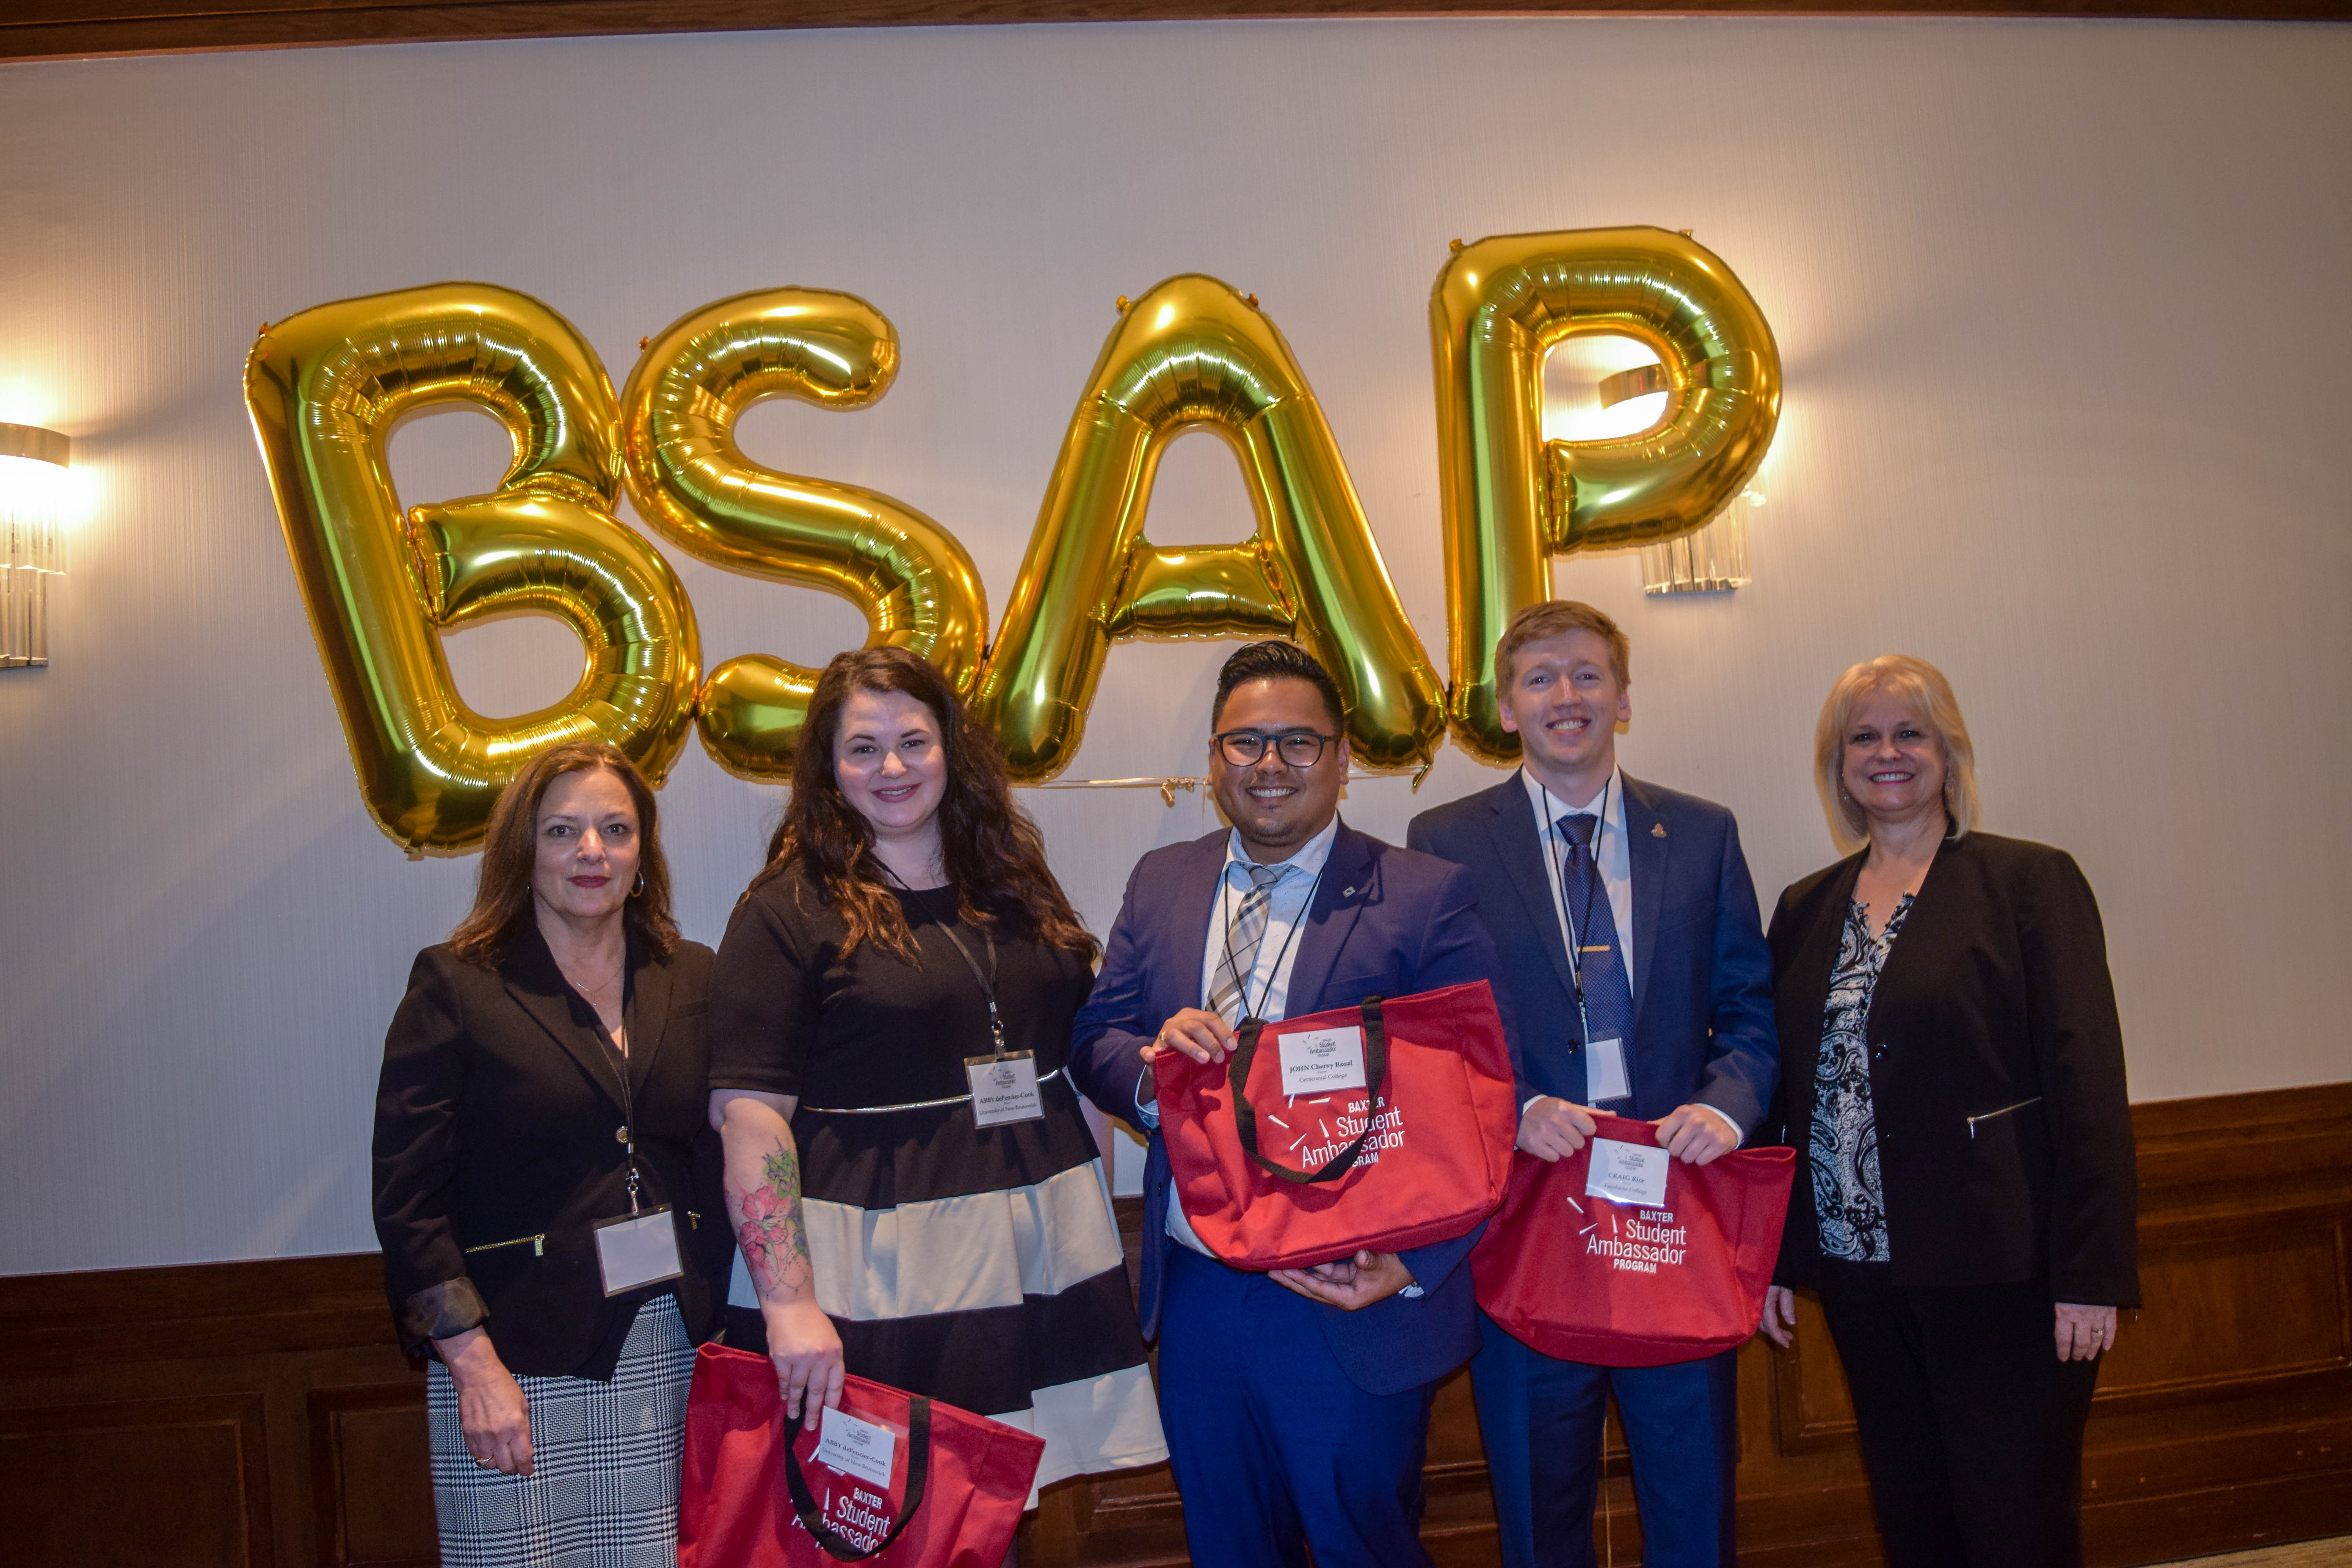 (l-r) Wendy McClung, Executive VP Operations, Baxter Media; Abby DePencier-Cook, Baxter Ambassador, University of New Brunswick; John Chervy Rosal, Baxter Ambassador, Centennial College; Craig Rice, Baxter Ambassador, Fanshawe College; Wendy Paradis, President, ACTA